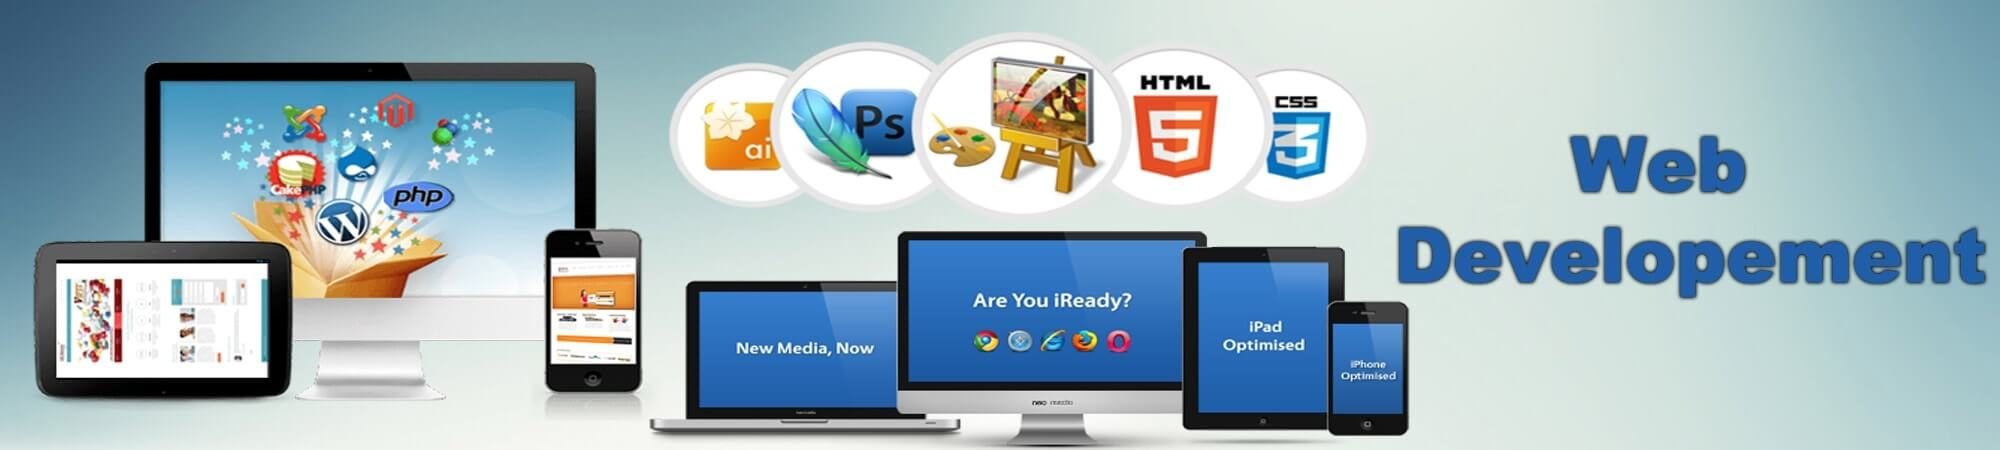 Make Wonderful Web Appearance With Our Services